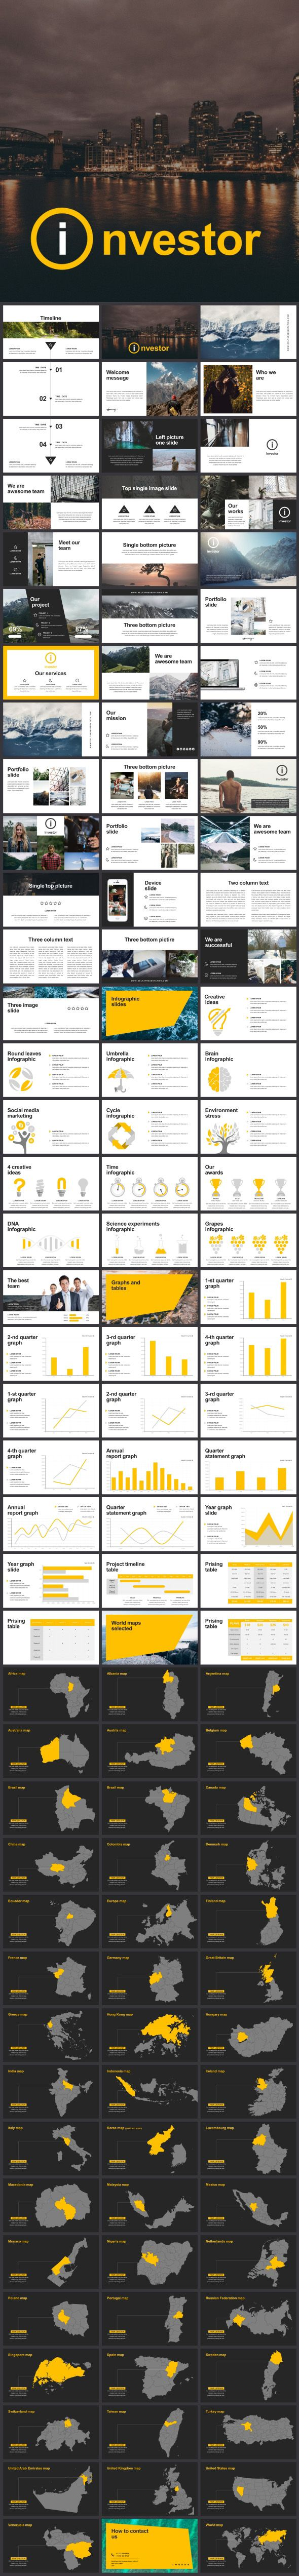 Investor - Powerpoint Template